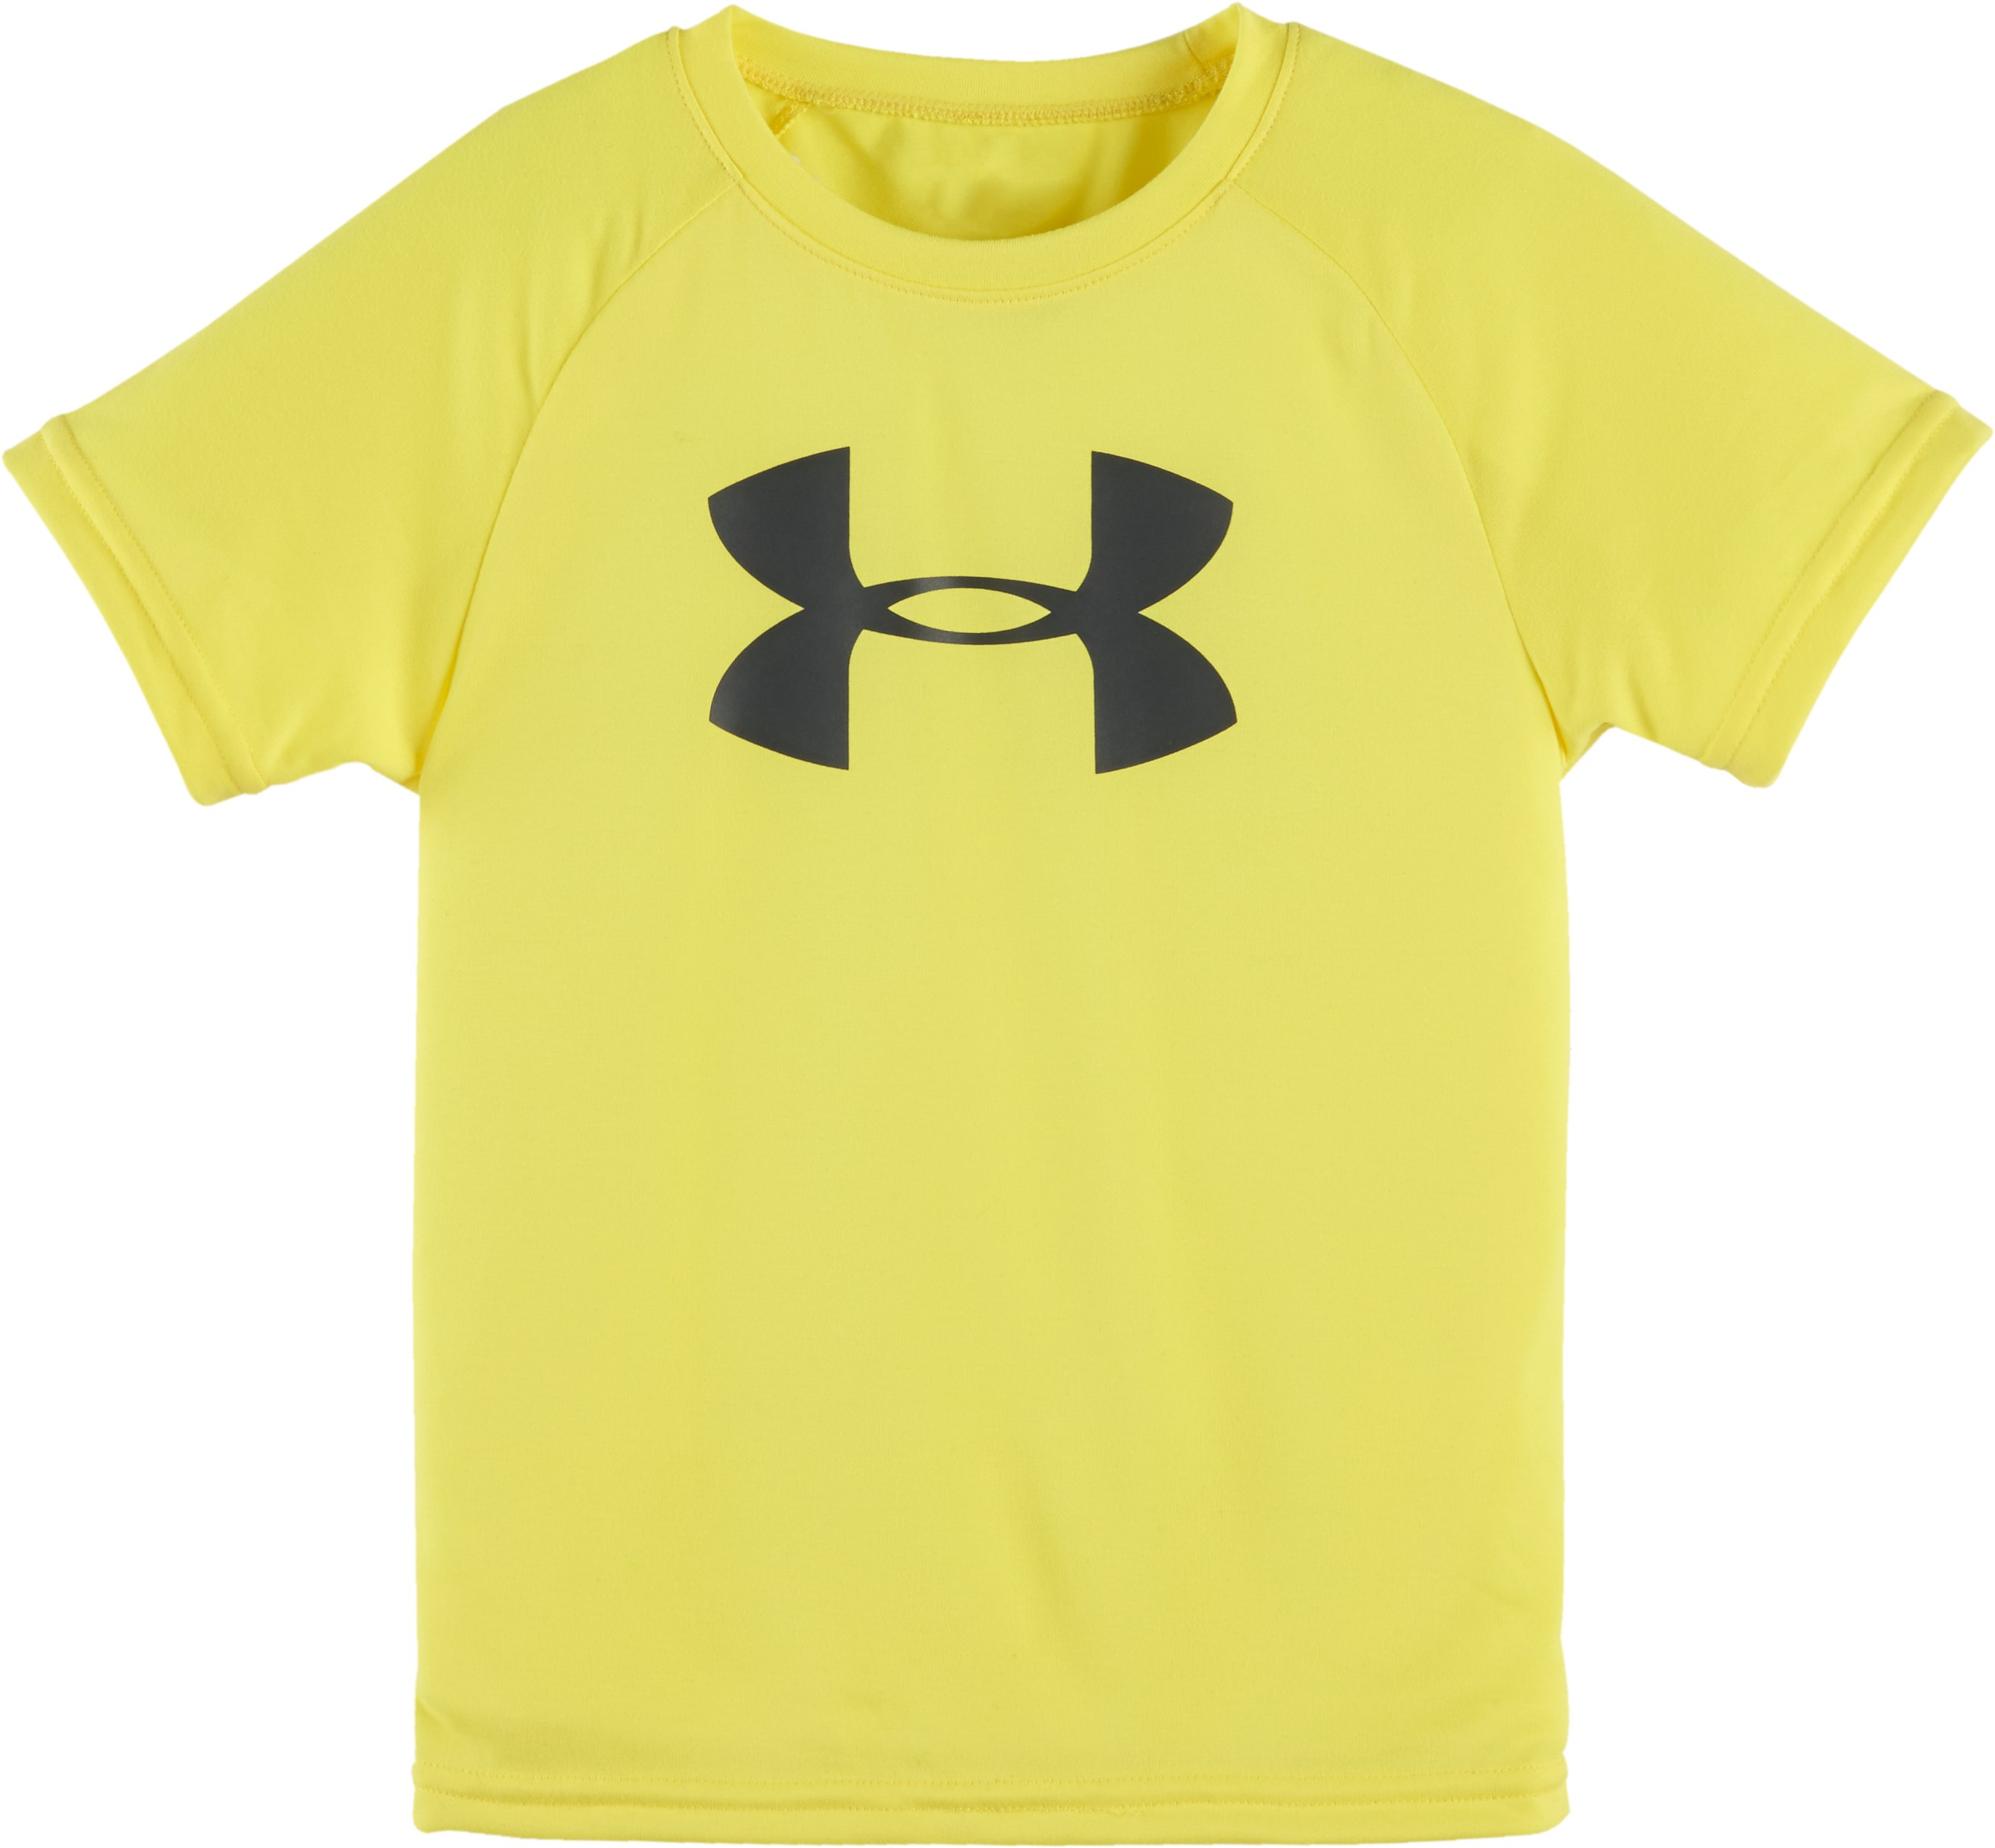 Boys' Pre-School UA Big Logo Short Sleeve T-Shirt, Sunbleached, Laydown